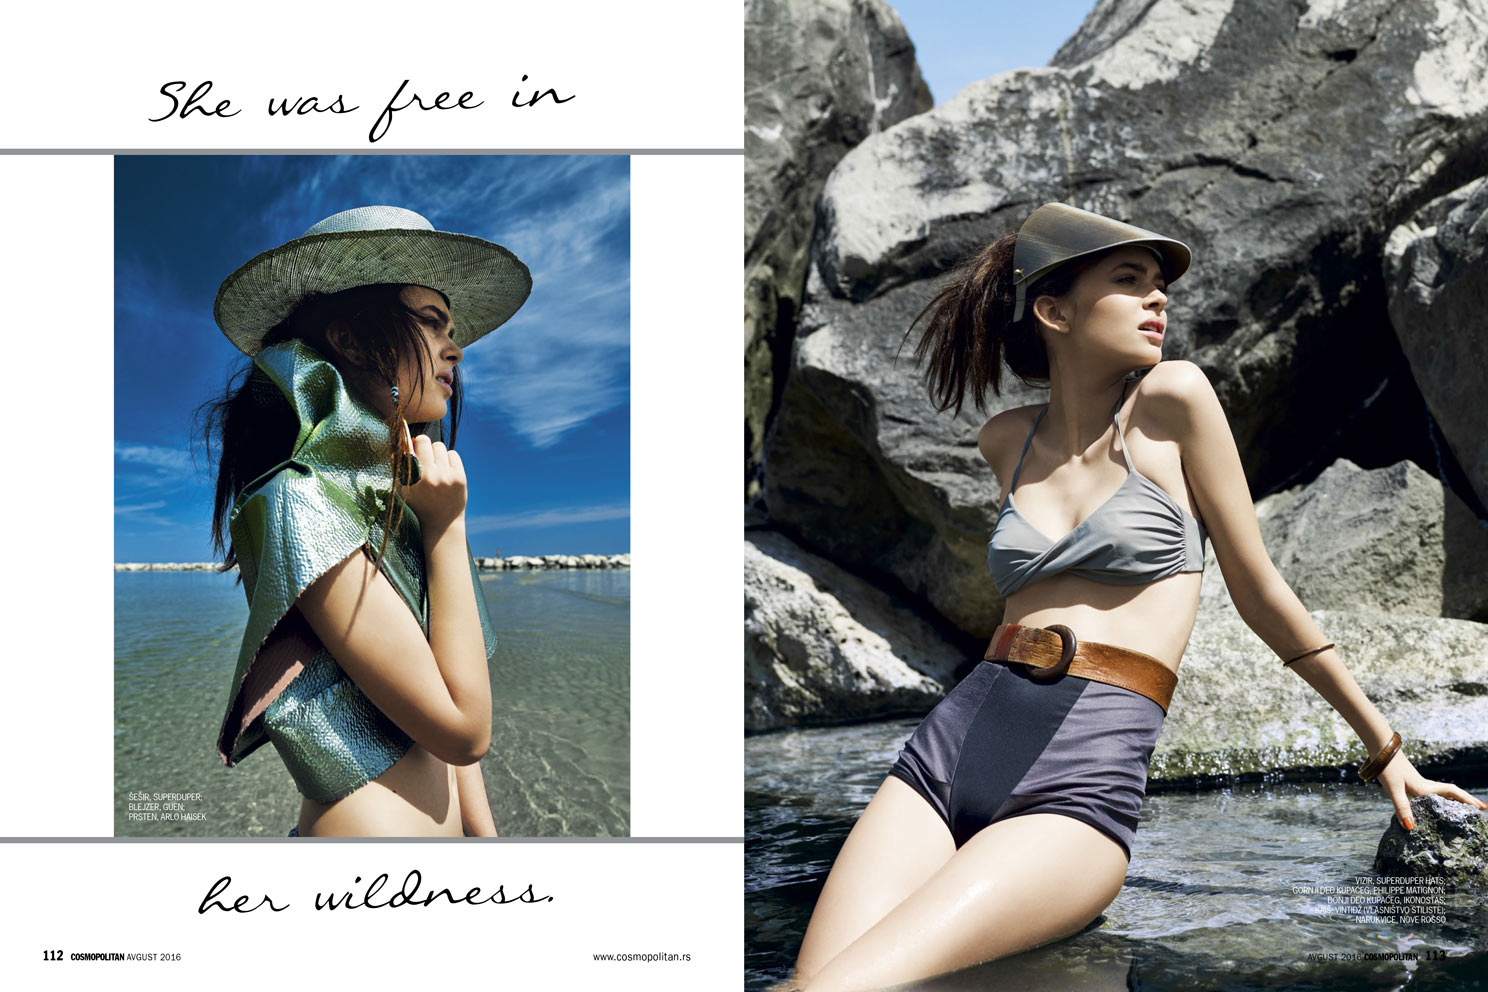 Left: Jacket GUEN,  Hat SUPER DUPER HATS, Ring ARLO HAISEK  -  Right: Visor SUPER DUPER HATS, Bikini PHILIPPE MATIGNON (stylist's archive), Belt VINTAGE, Culotte IKONOSTAS, Bracelets NOVE ROSSO